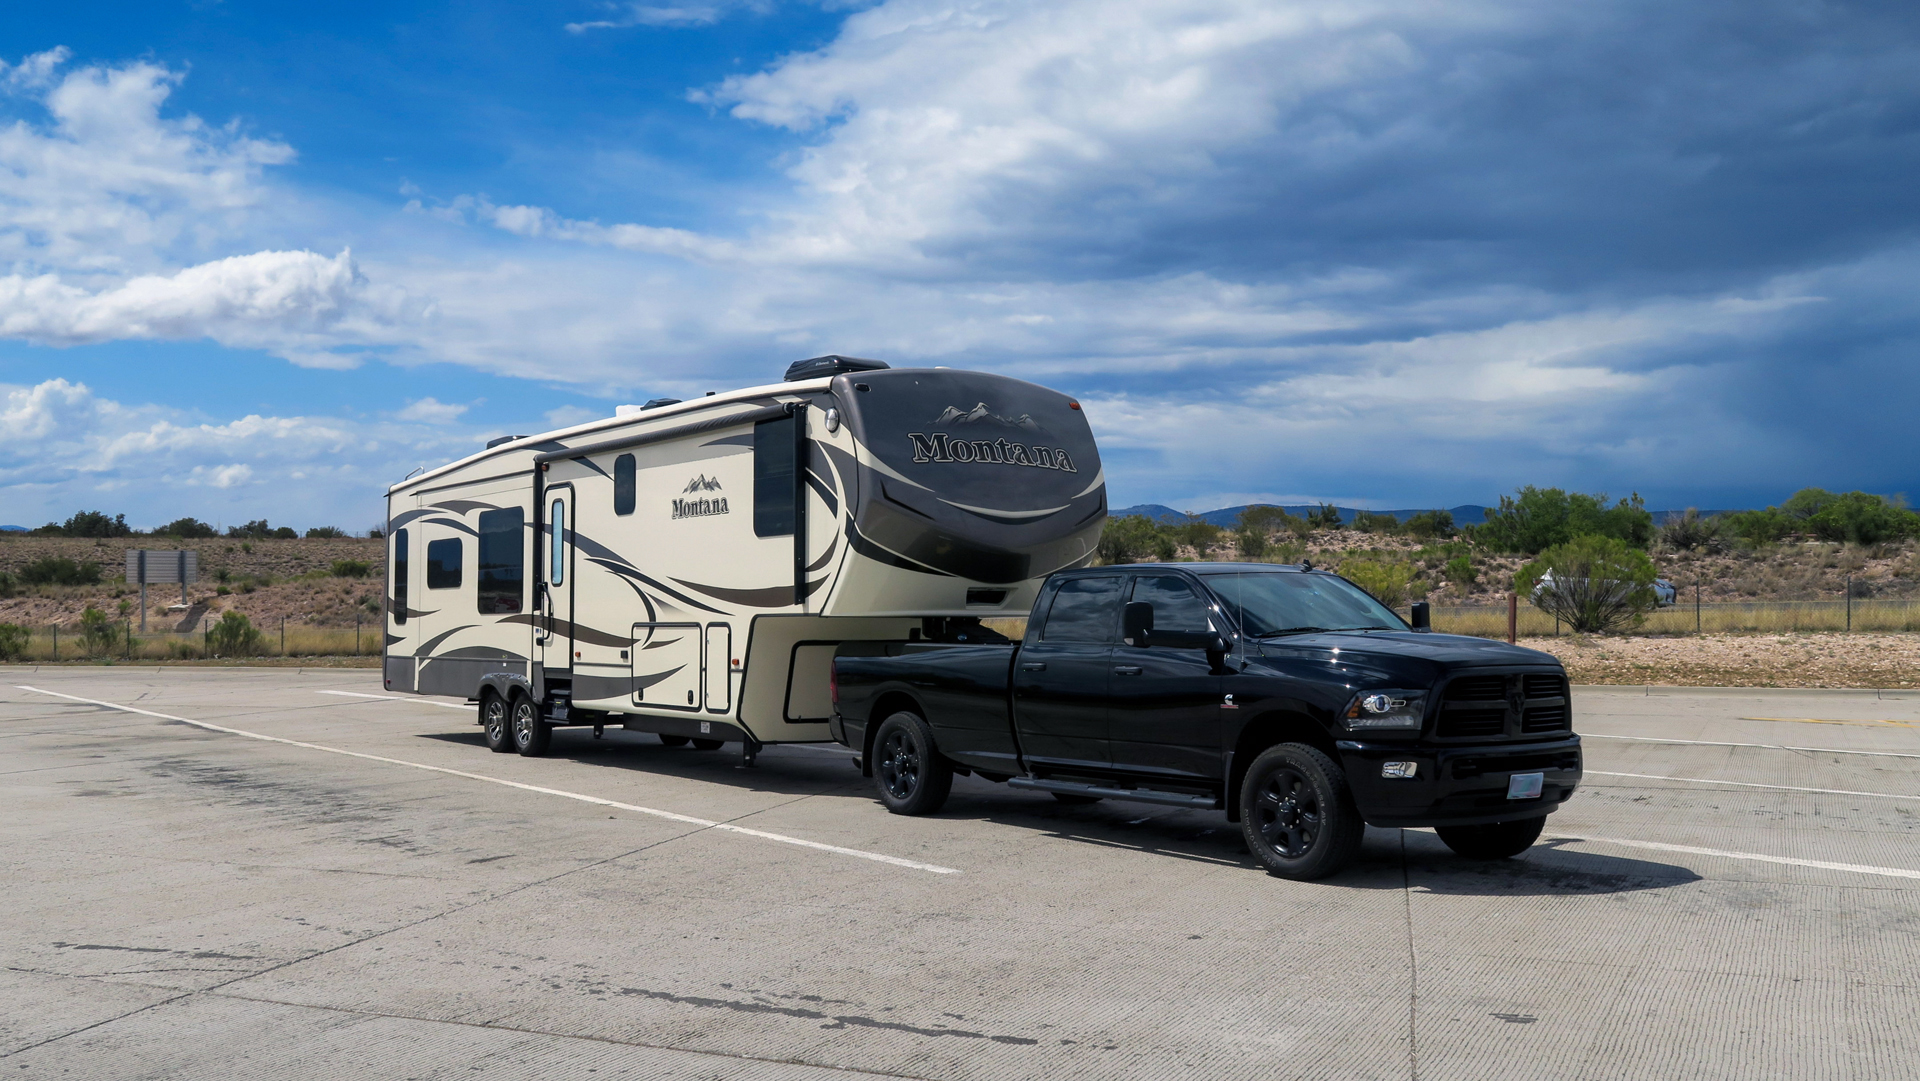 RV Safety Tips for RV Living and Travel